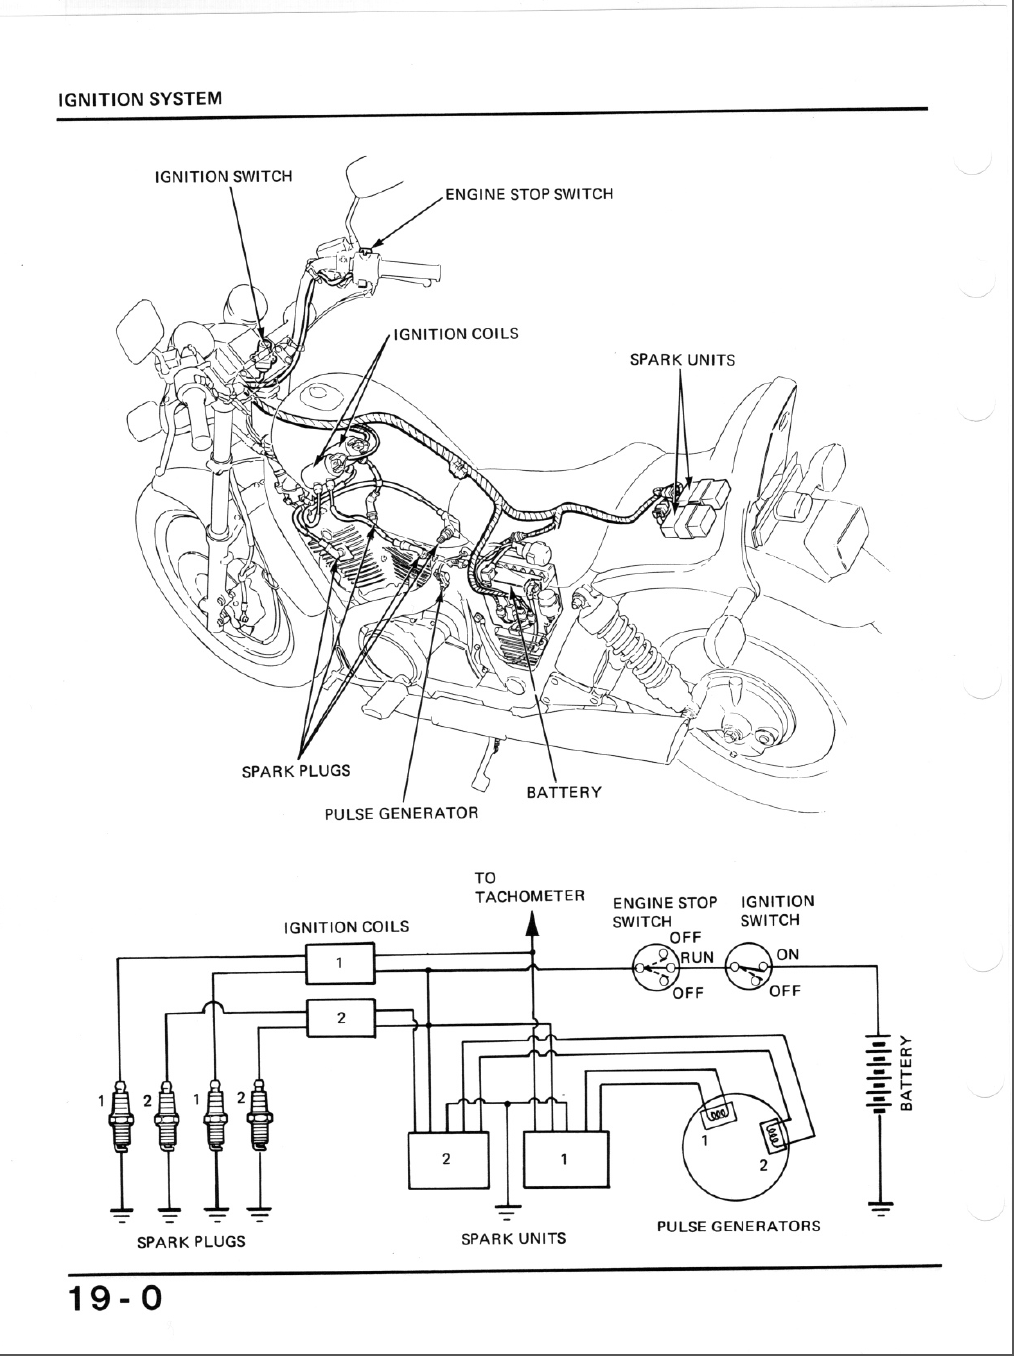 1984 honda sabre 700 wiring diagram house wiring diagram symbols u2022 rh mollusksurfshopnyc com 1999 Honda Shadow Wiring-Diagram 1999 Honda Shadow Wiring-Diagram